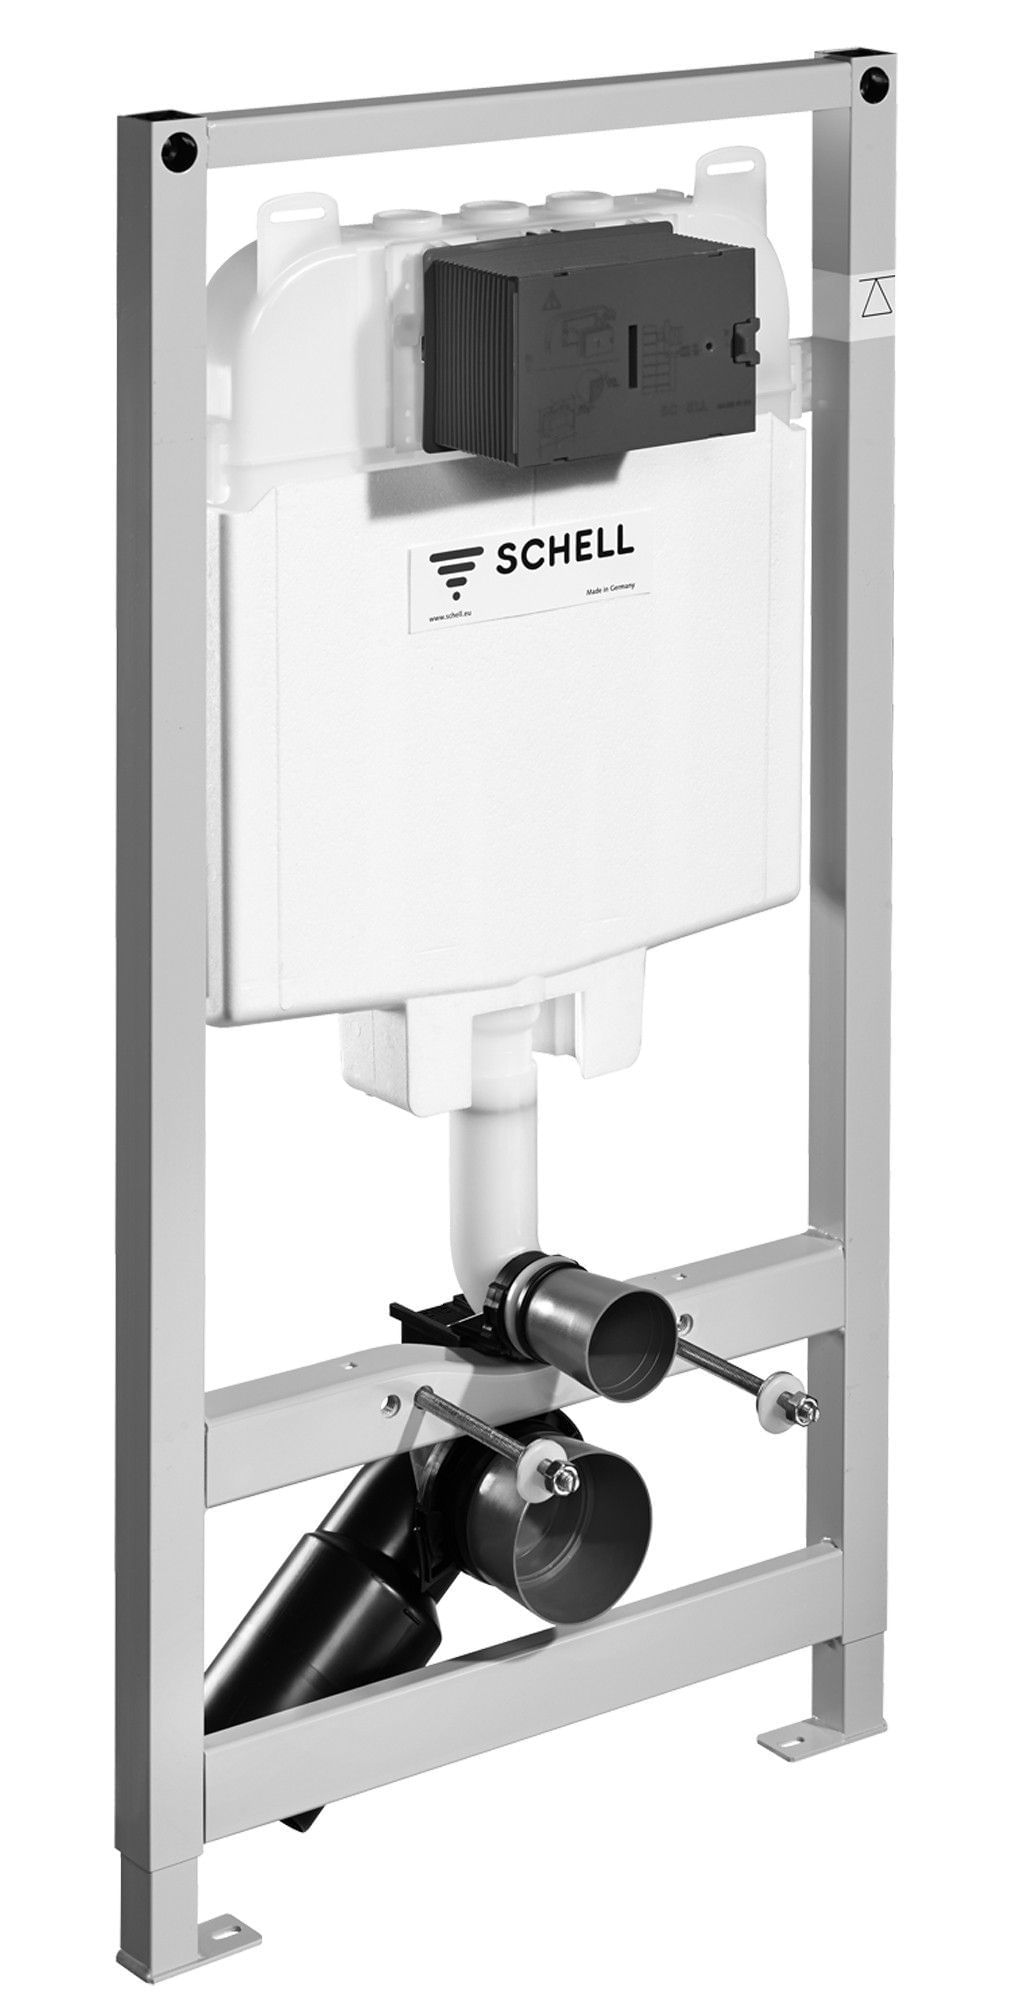 SCHELL WC mounting module MONTUS C 80